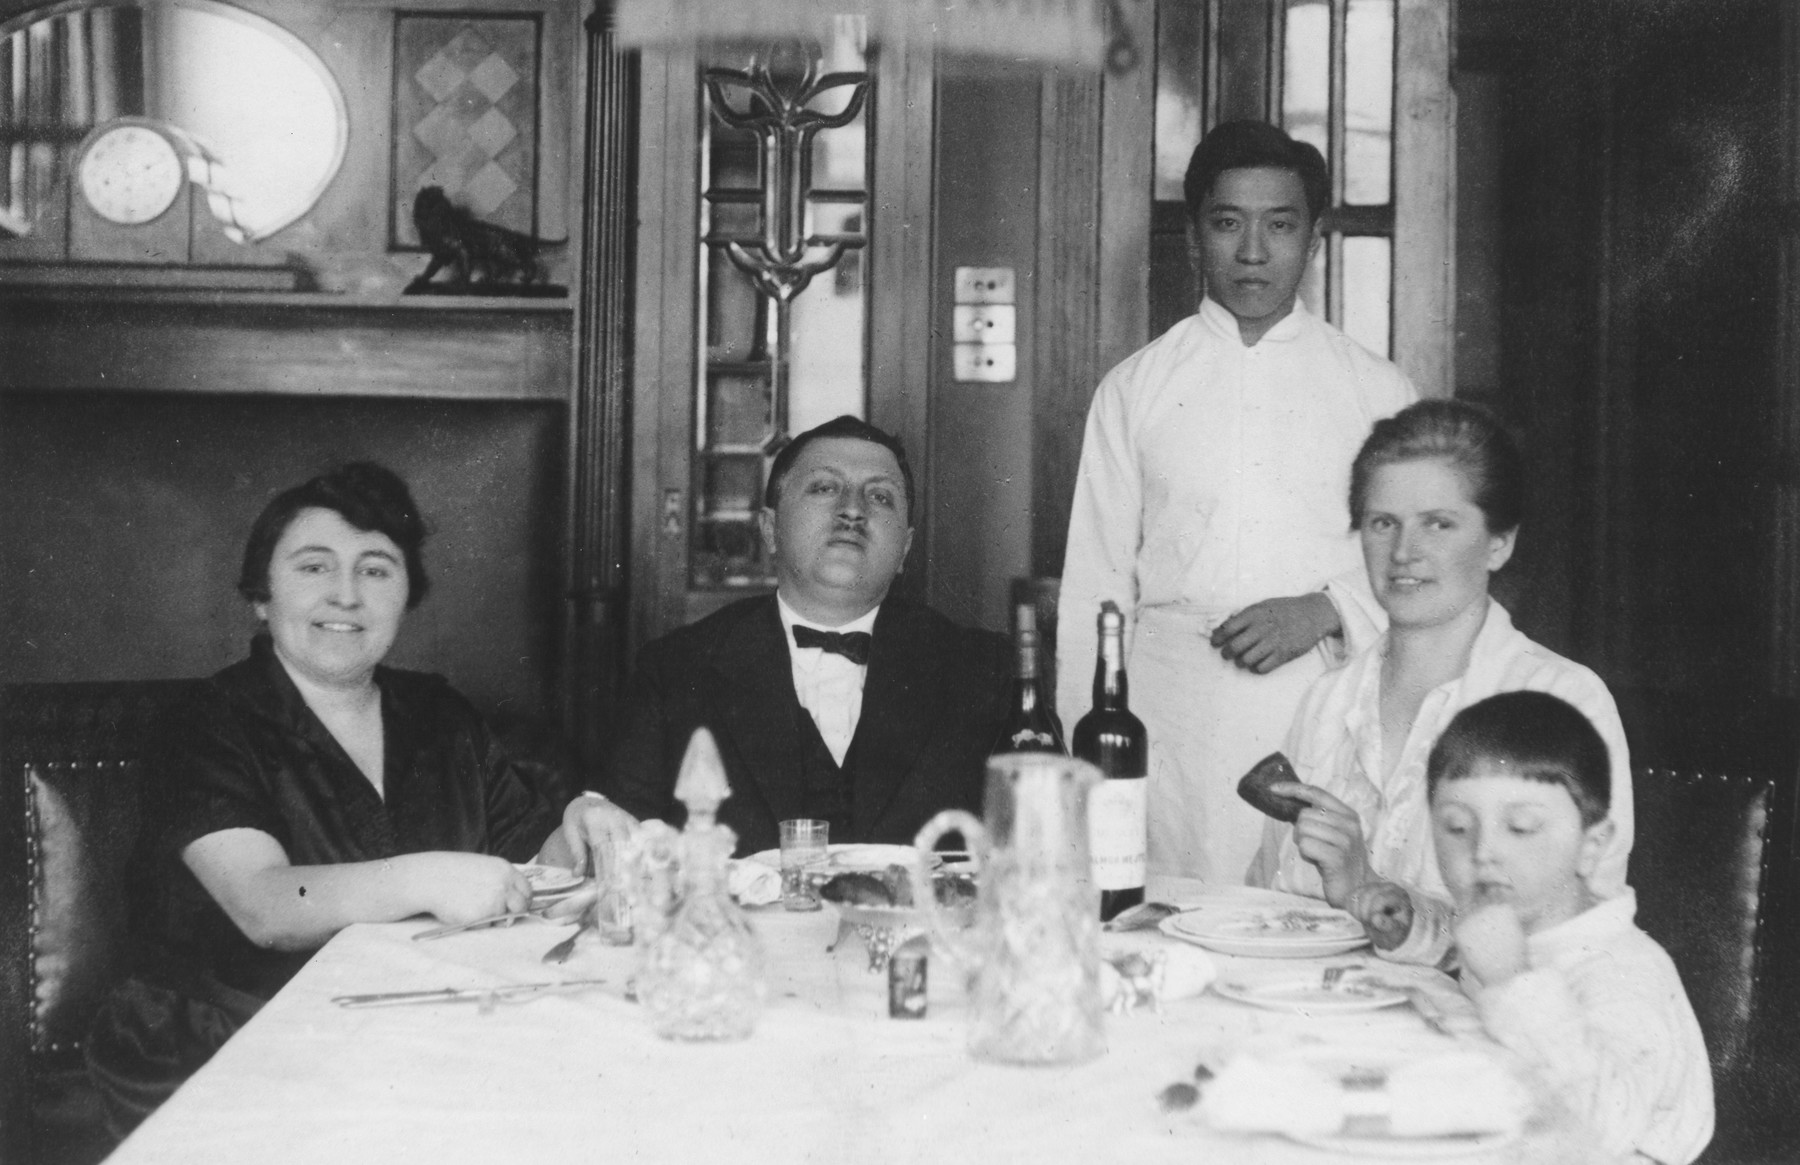 A Jewish family poses with their hired help at the dinner table in their home in Harbin, China.  Pictured from left to right are Betia Faingersch, Aaron Faingersch, their Chinese servant, their German governess and Vladimir Faingersch.